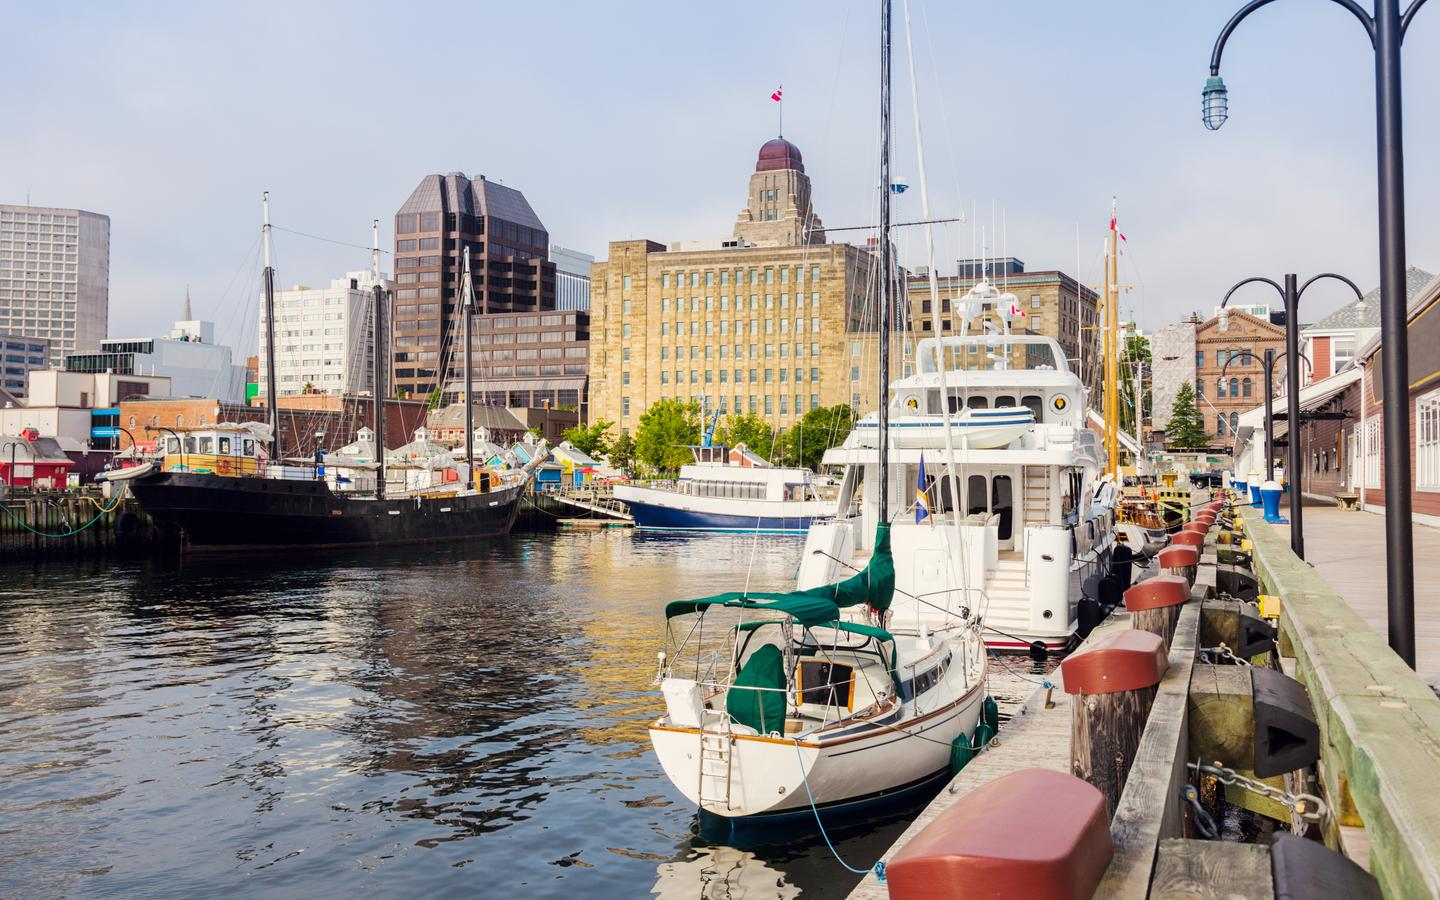 Hotels in Halifax